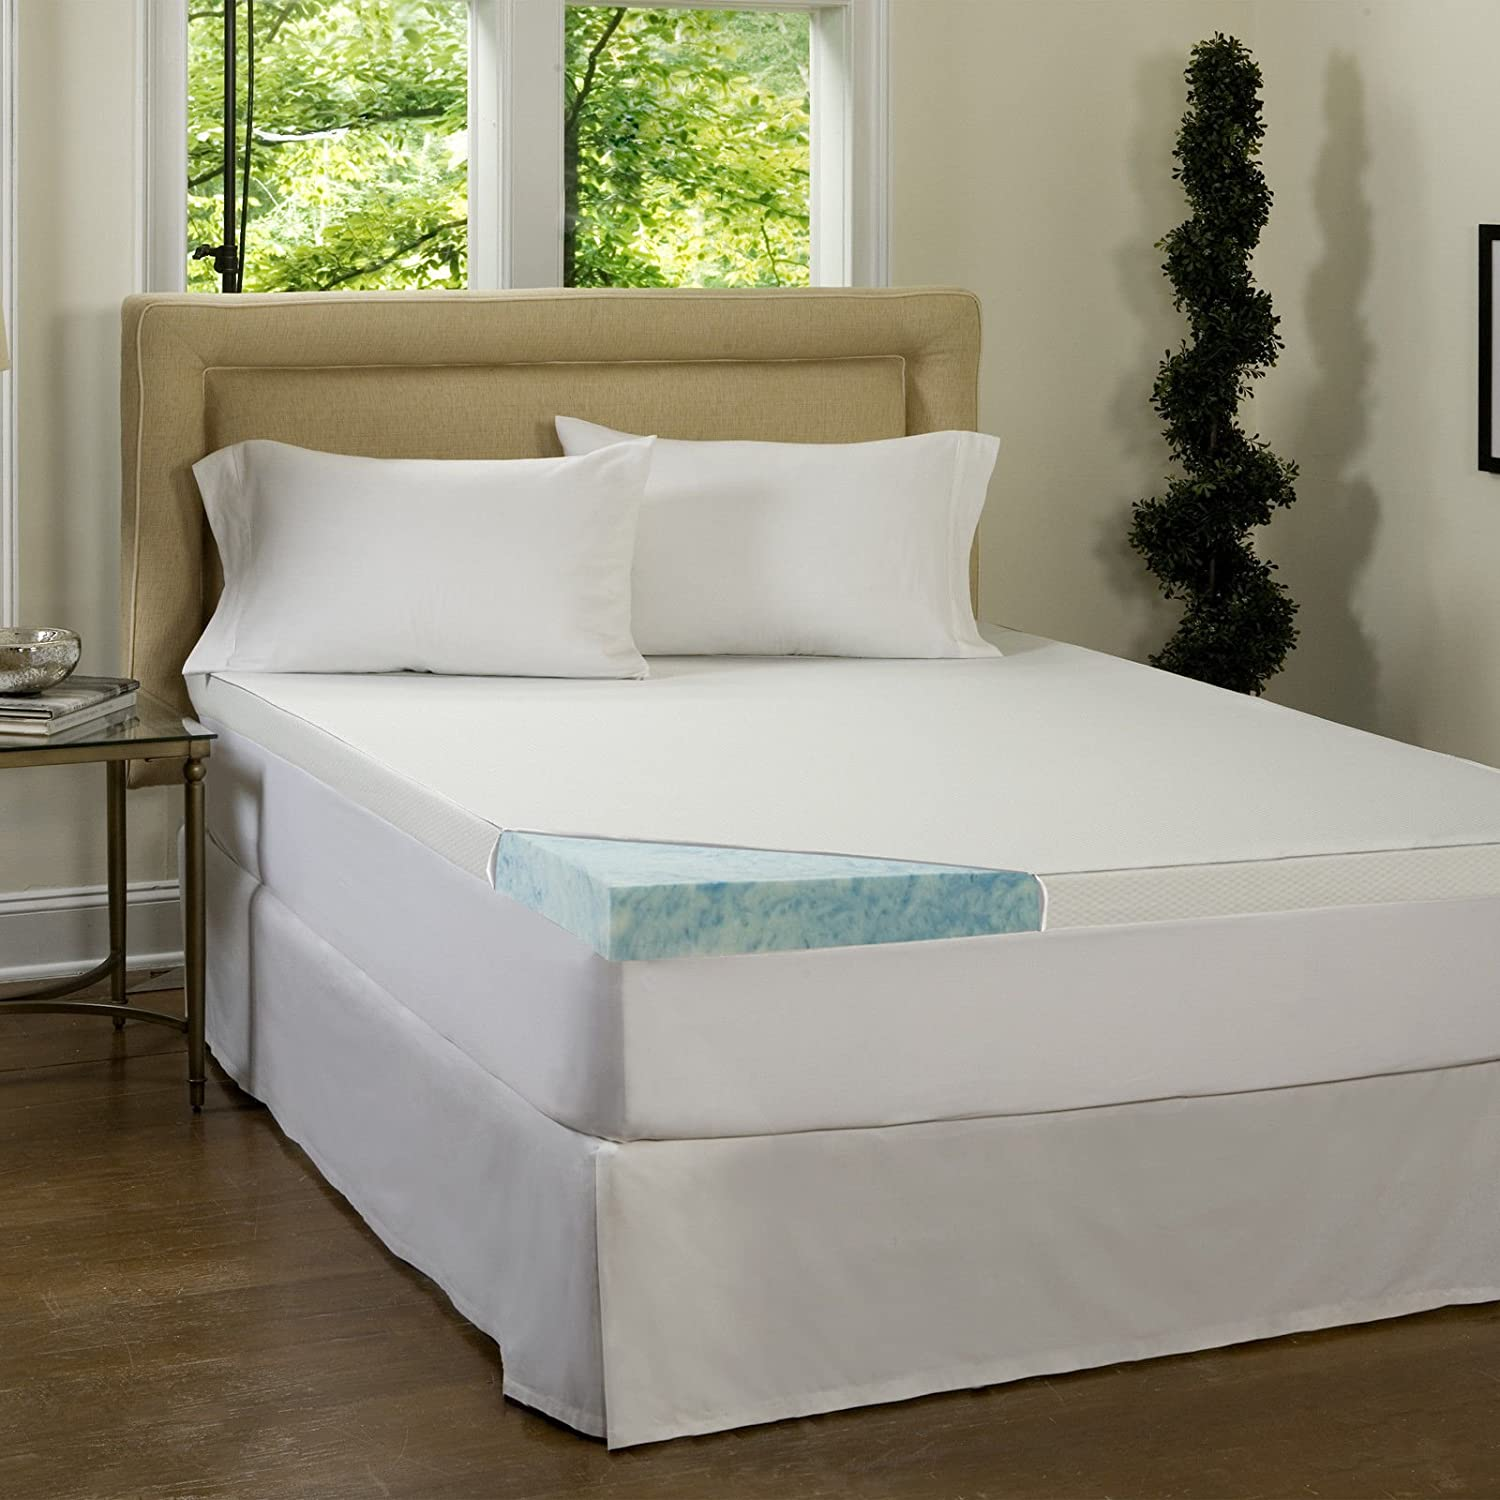 Amazon.com: Beautyrest 3-inch Gel Memory Foam Mattress Topper amp;  Waterproof Cover - Queen - Deluxe Mattress Pad For Luxury Bedding.